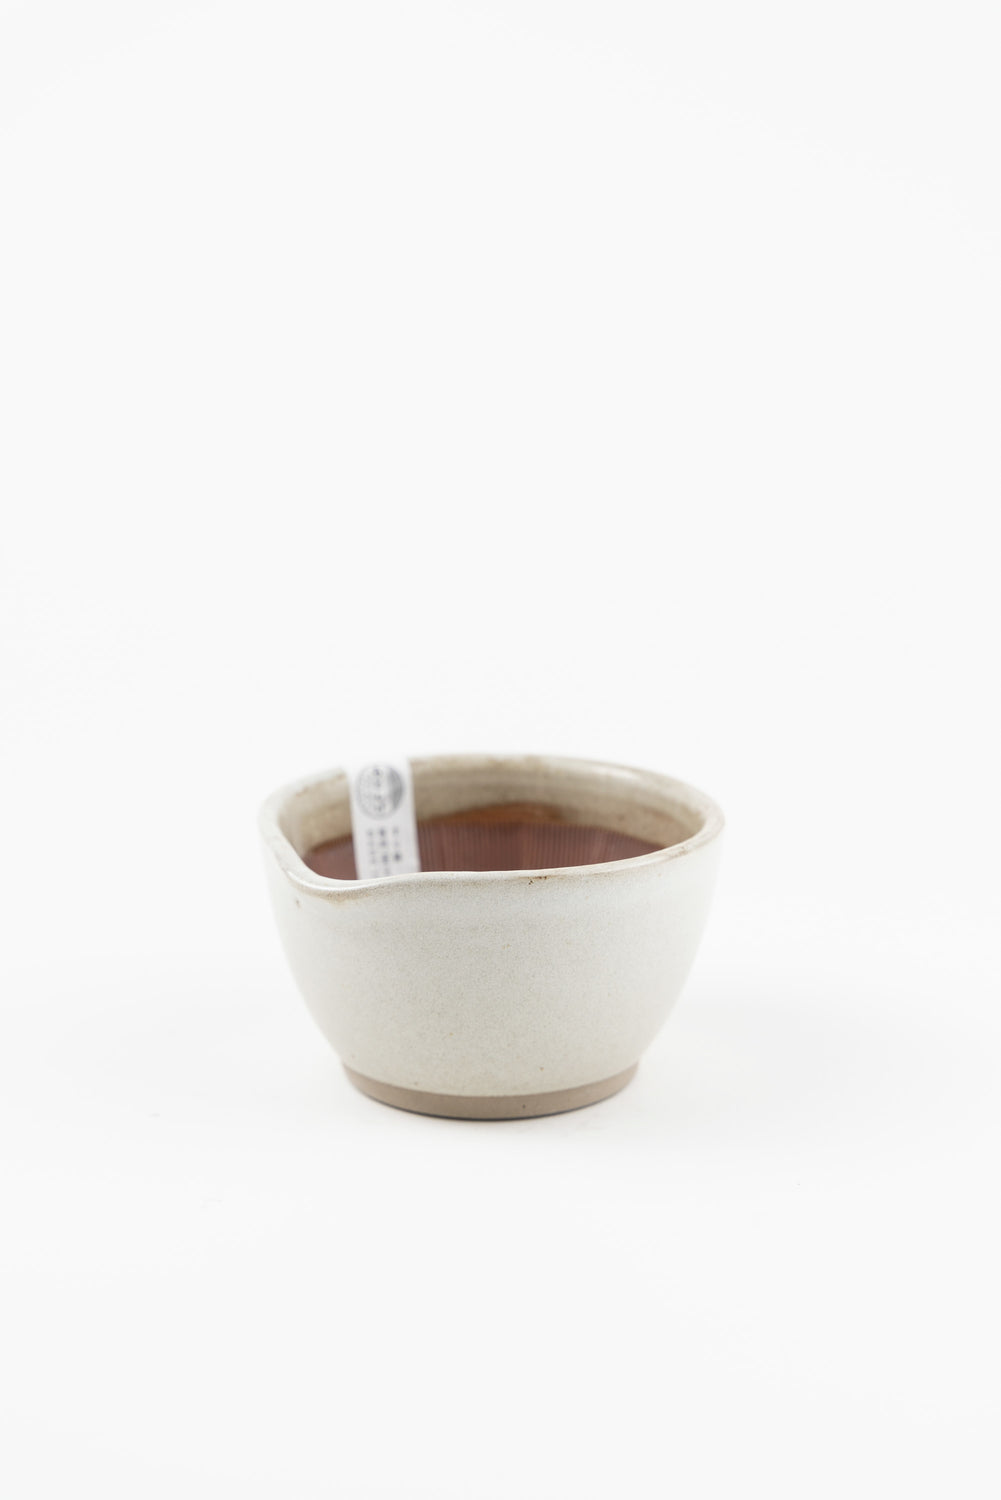 Mortar Bowl with Pestle